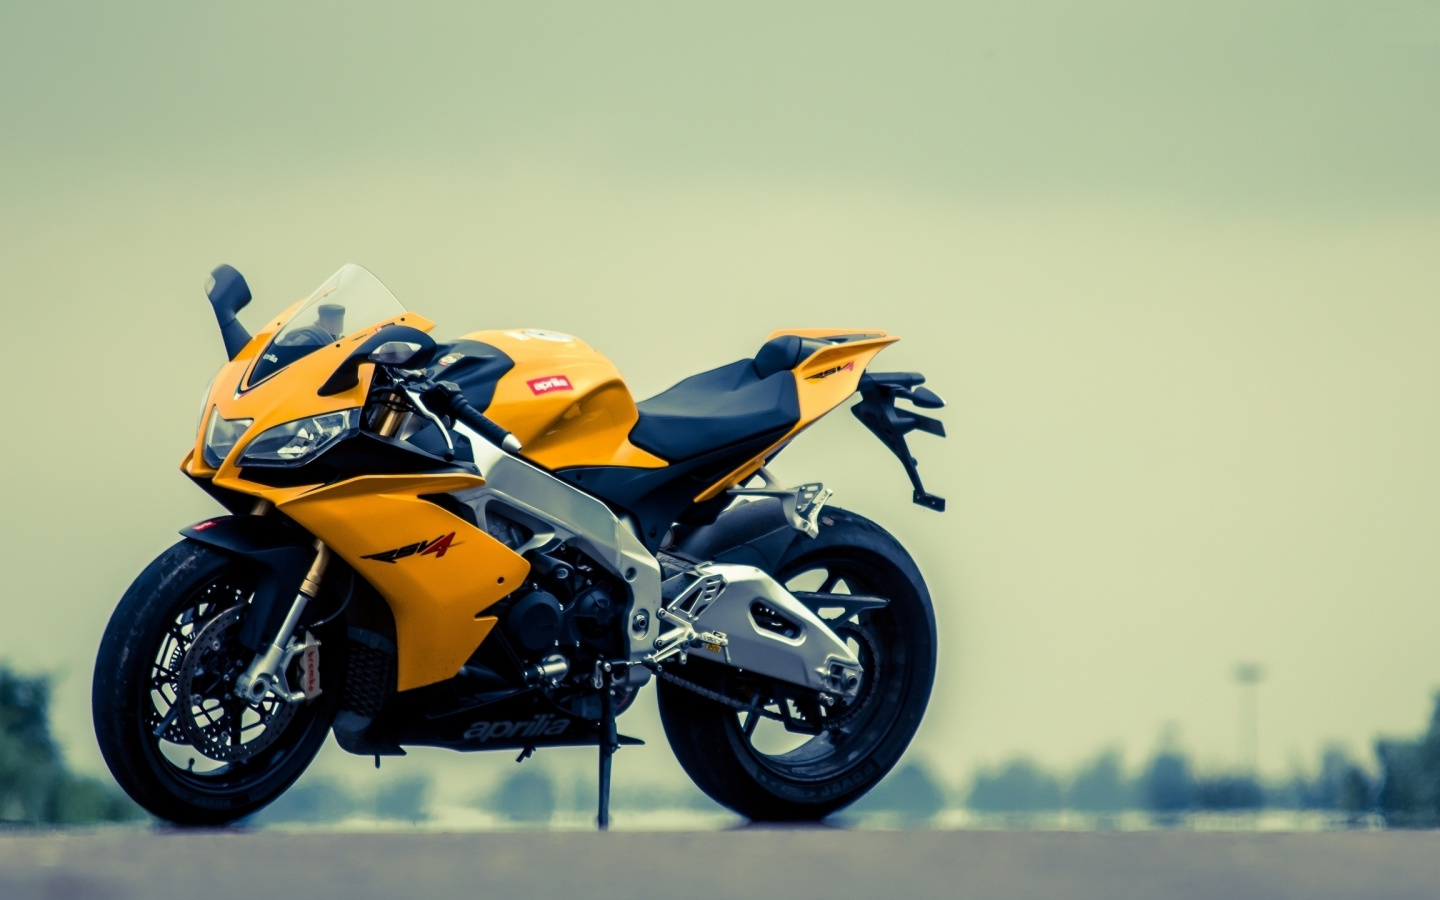 1440x900 Aprilia RSV4 Yellow Motorcycle